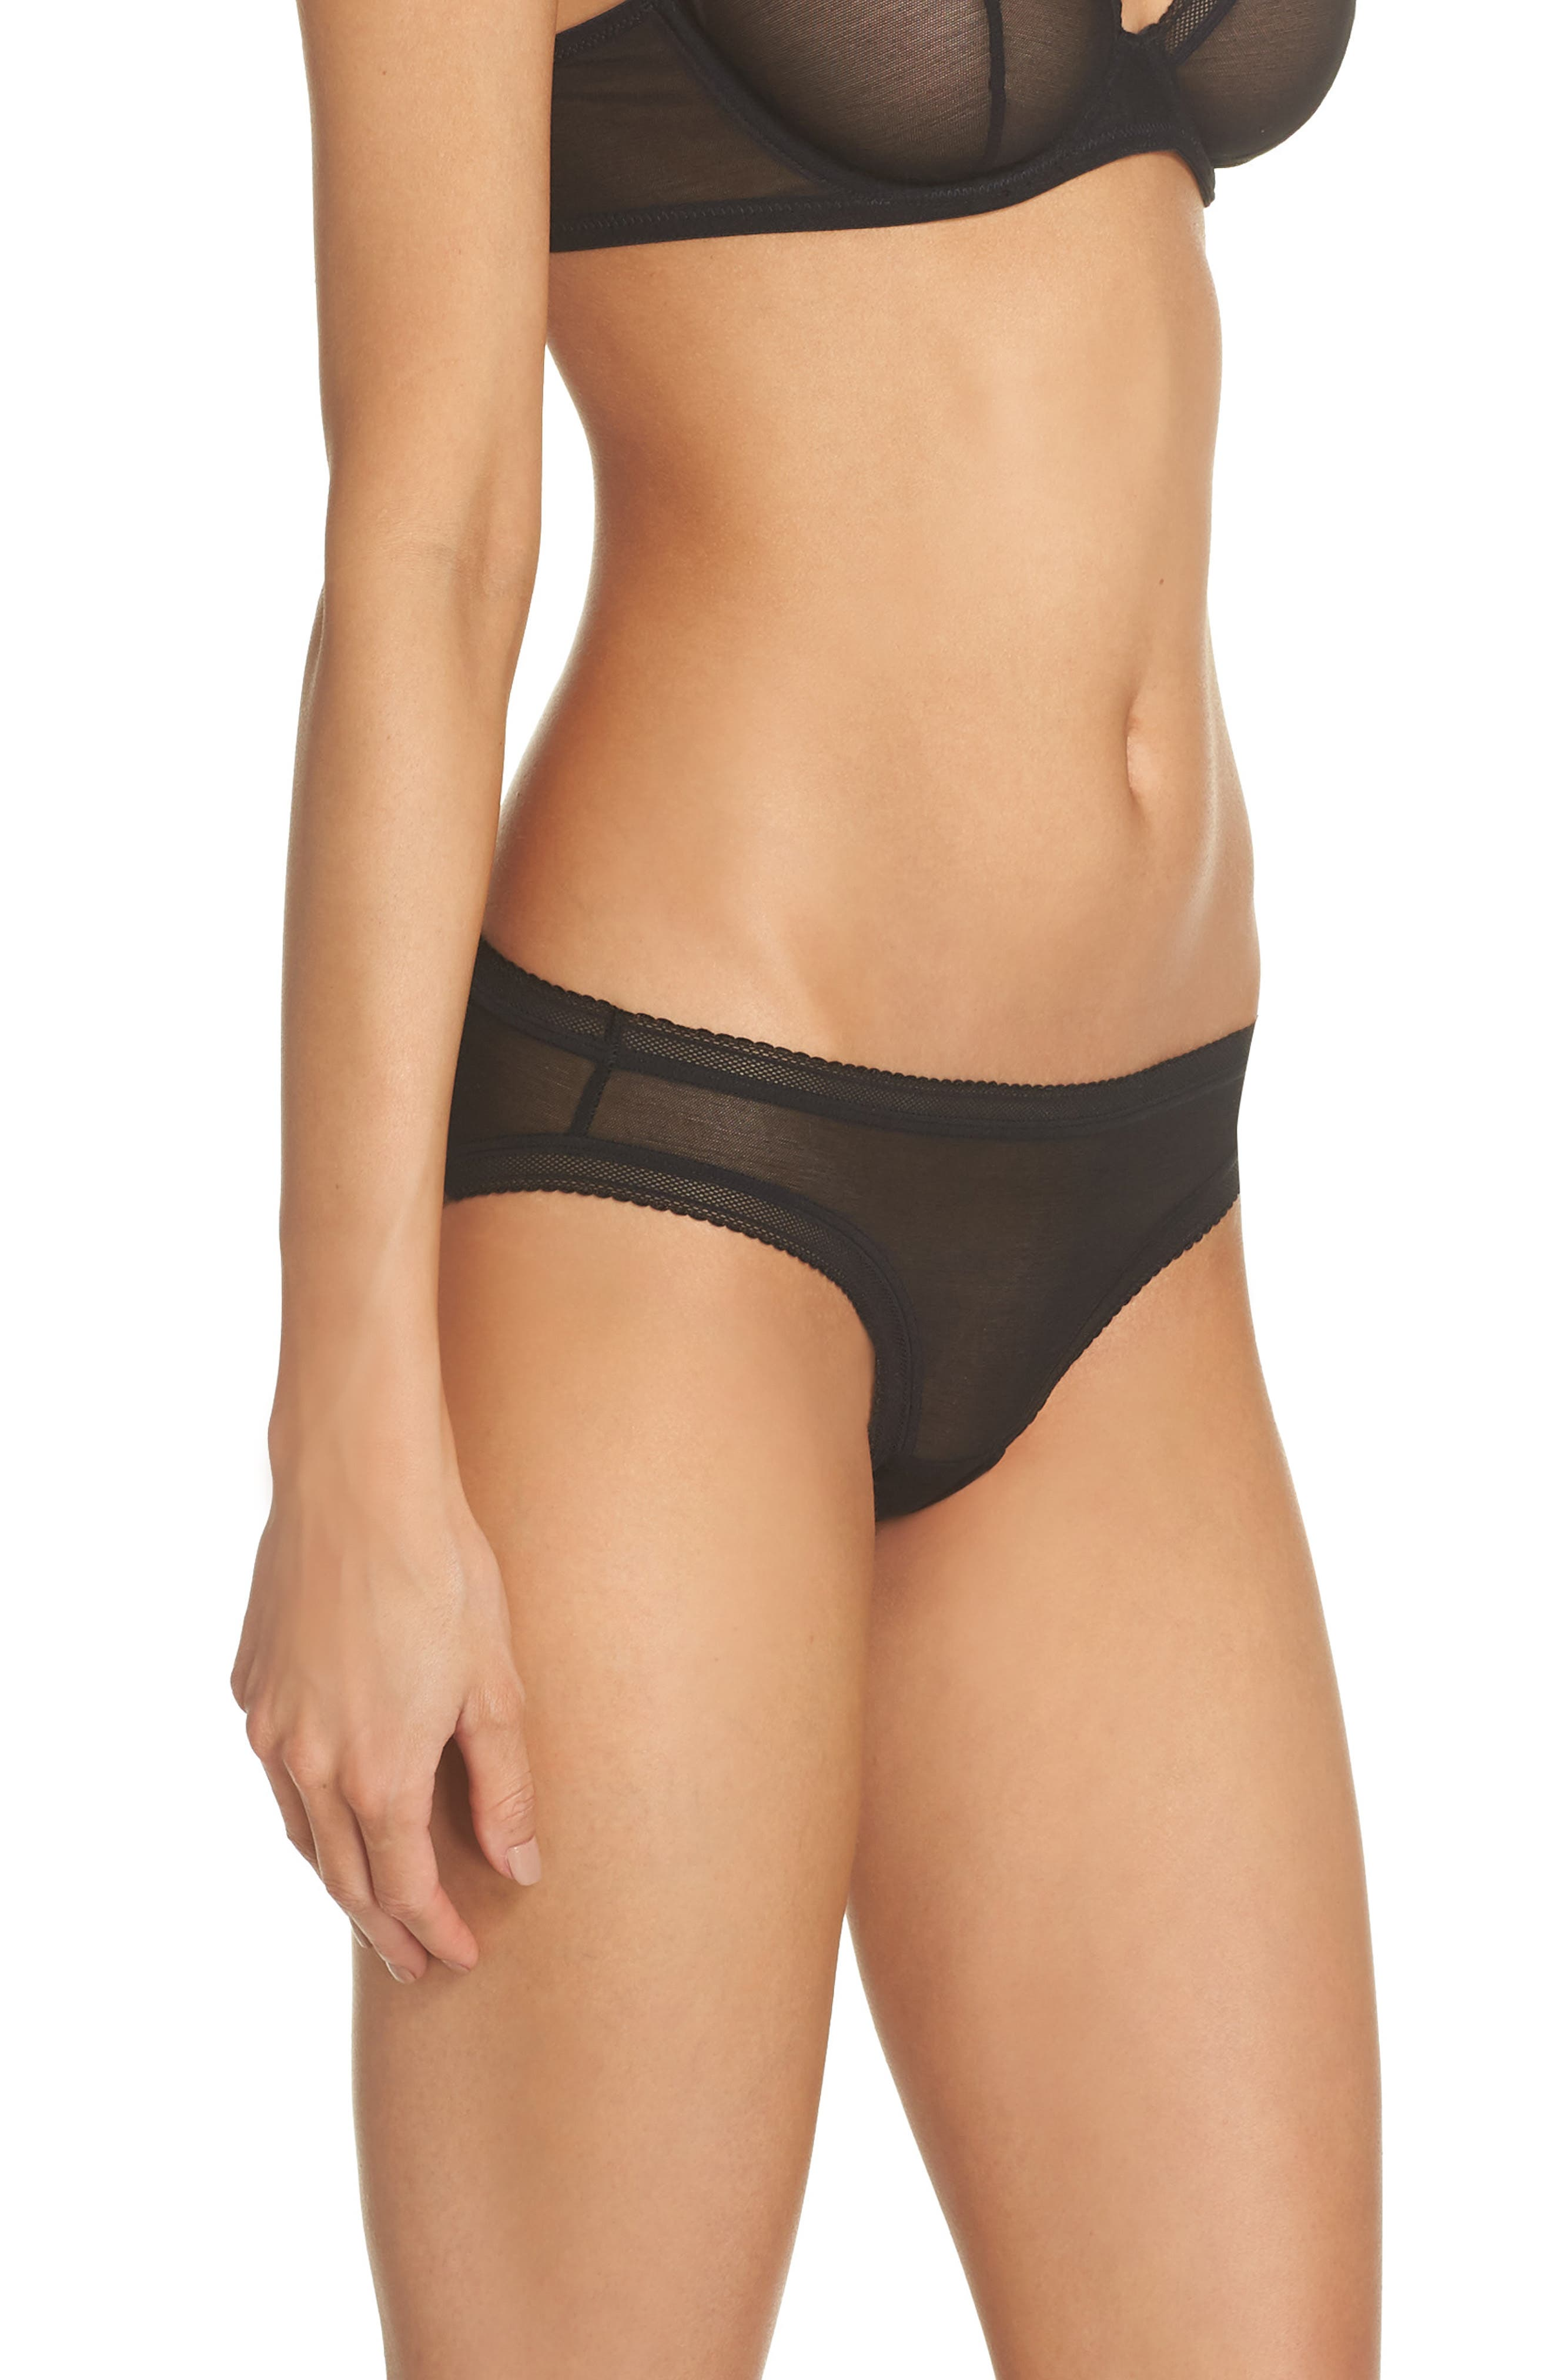 Mesh Bikini,                             Alternate thumbnail 3, color,                             Black